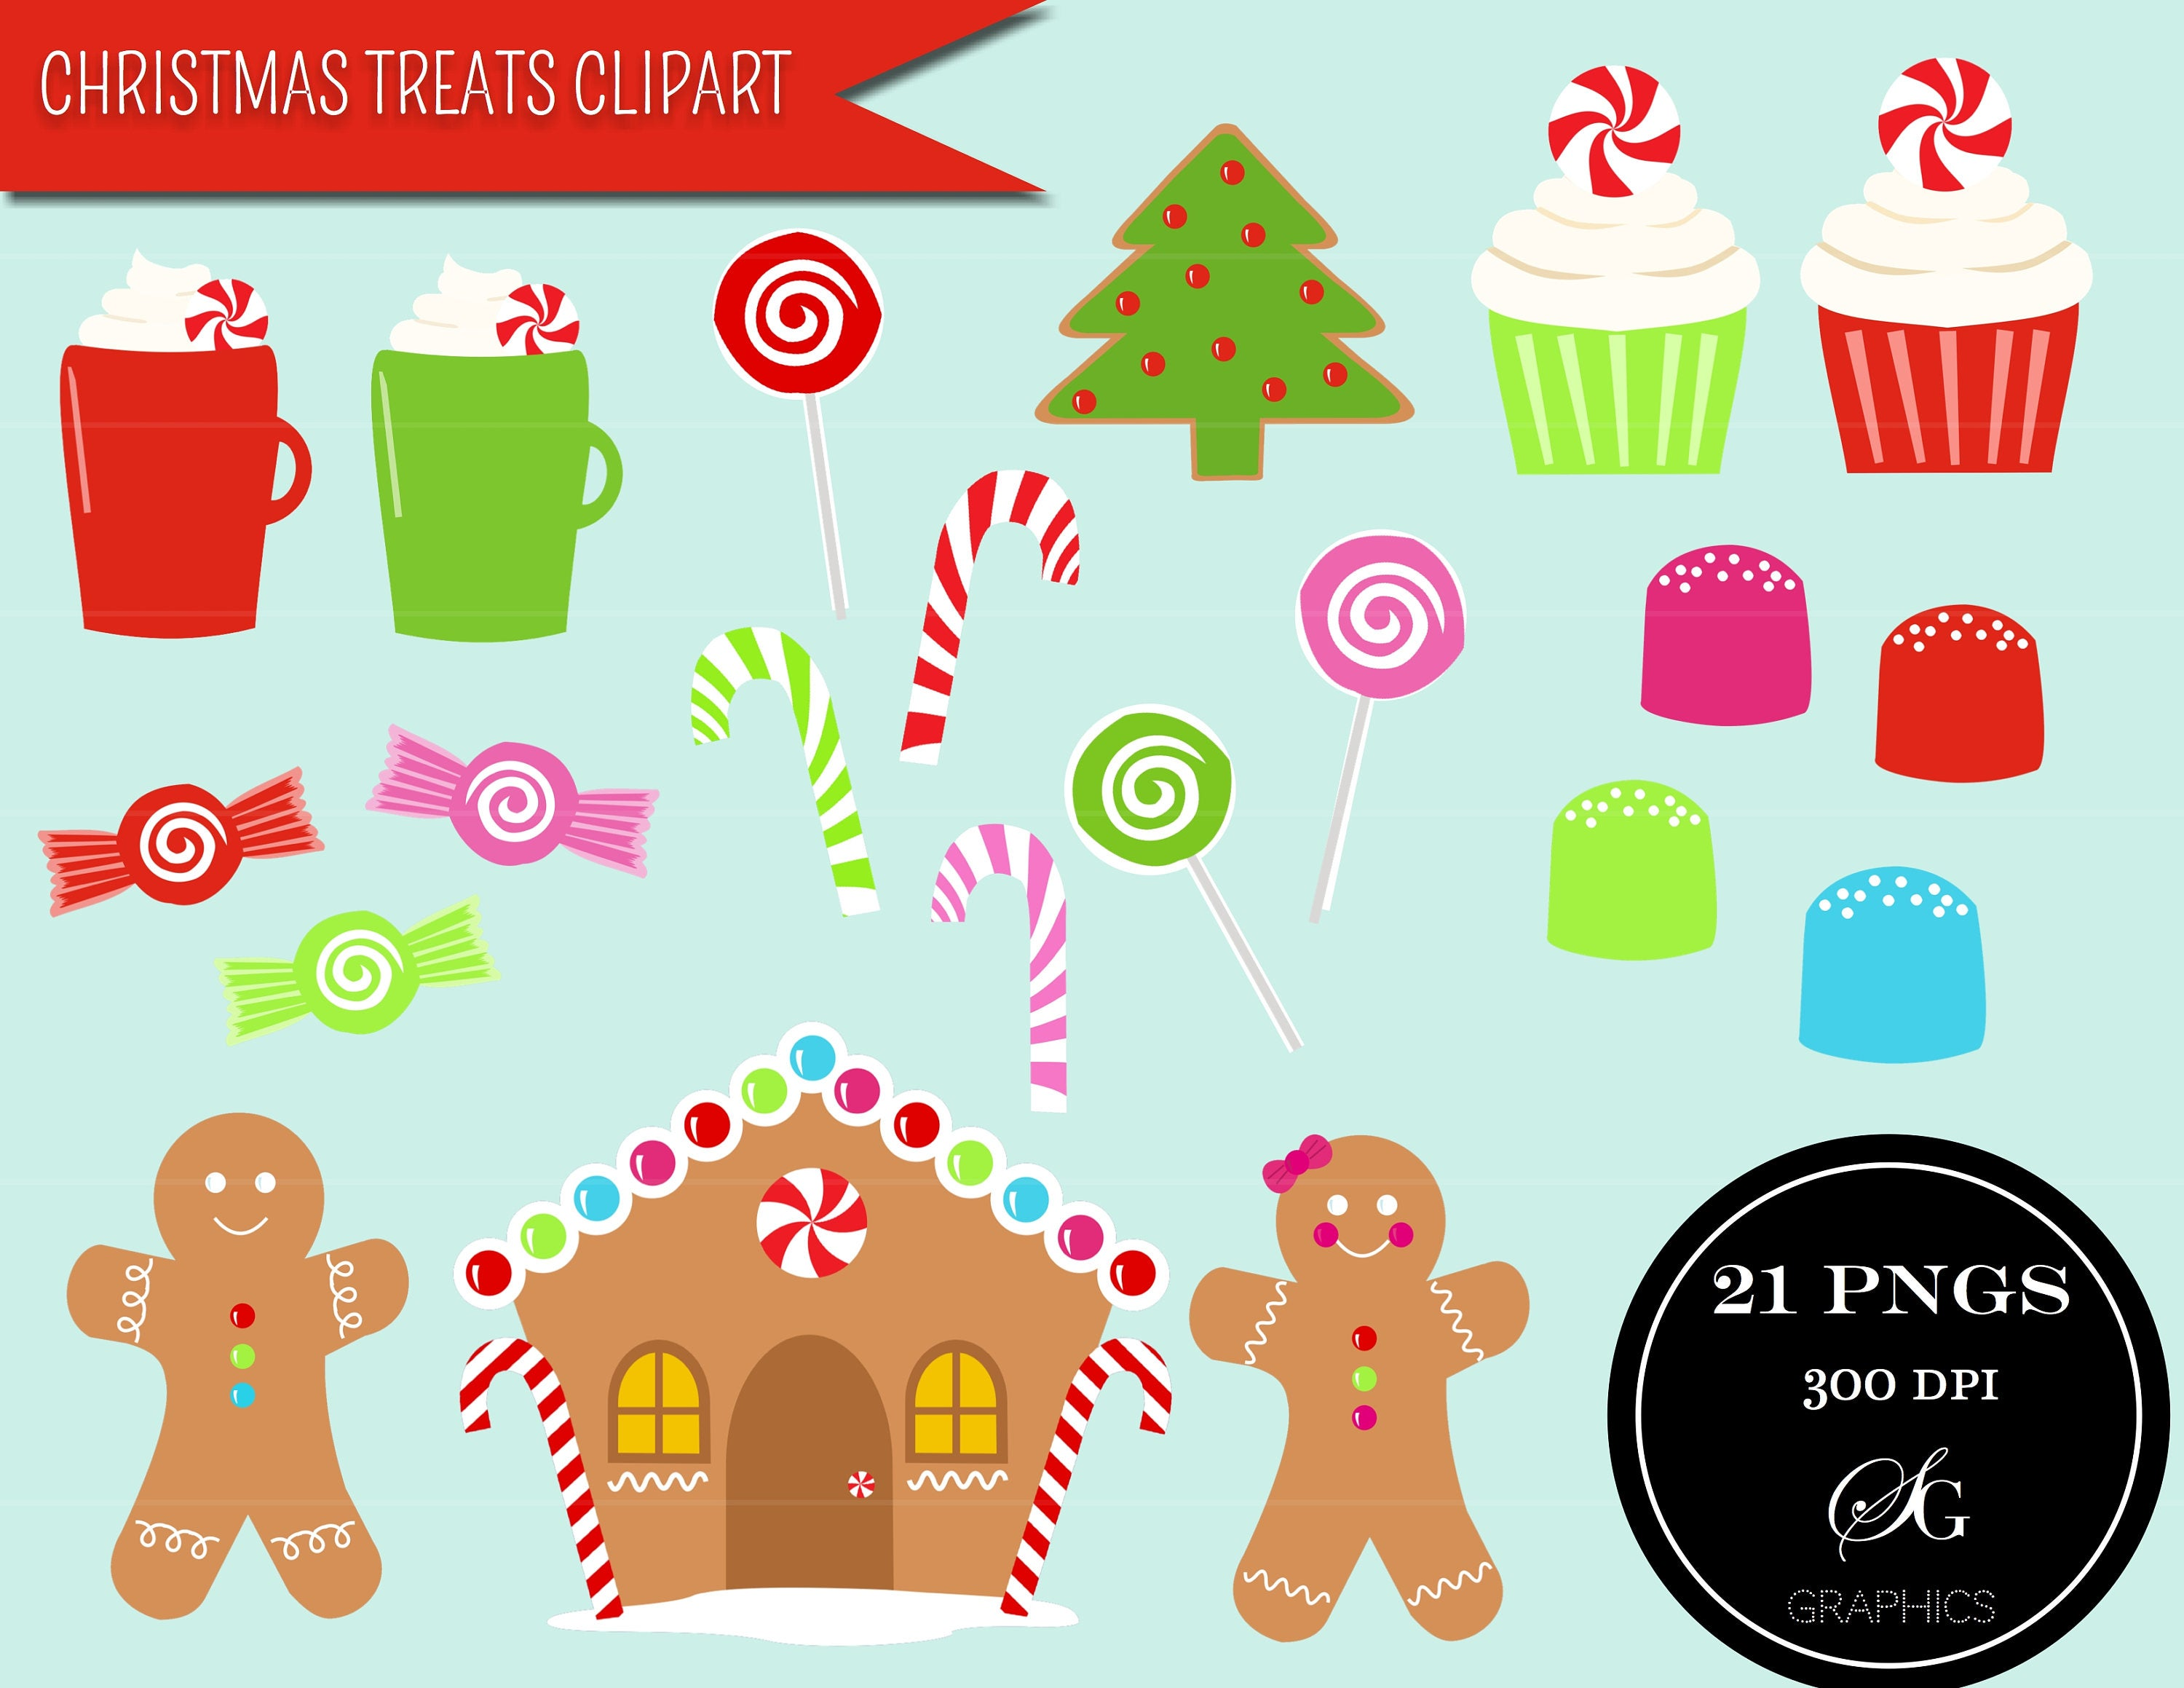 Christmas candy clipart set: